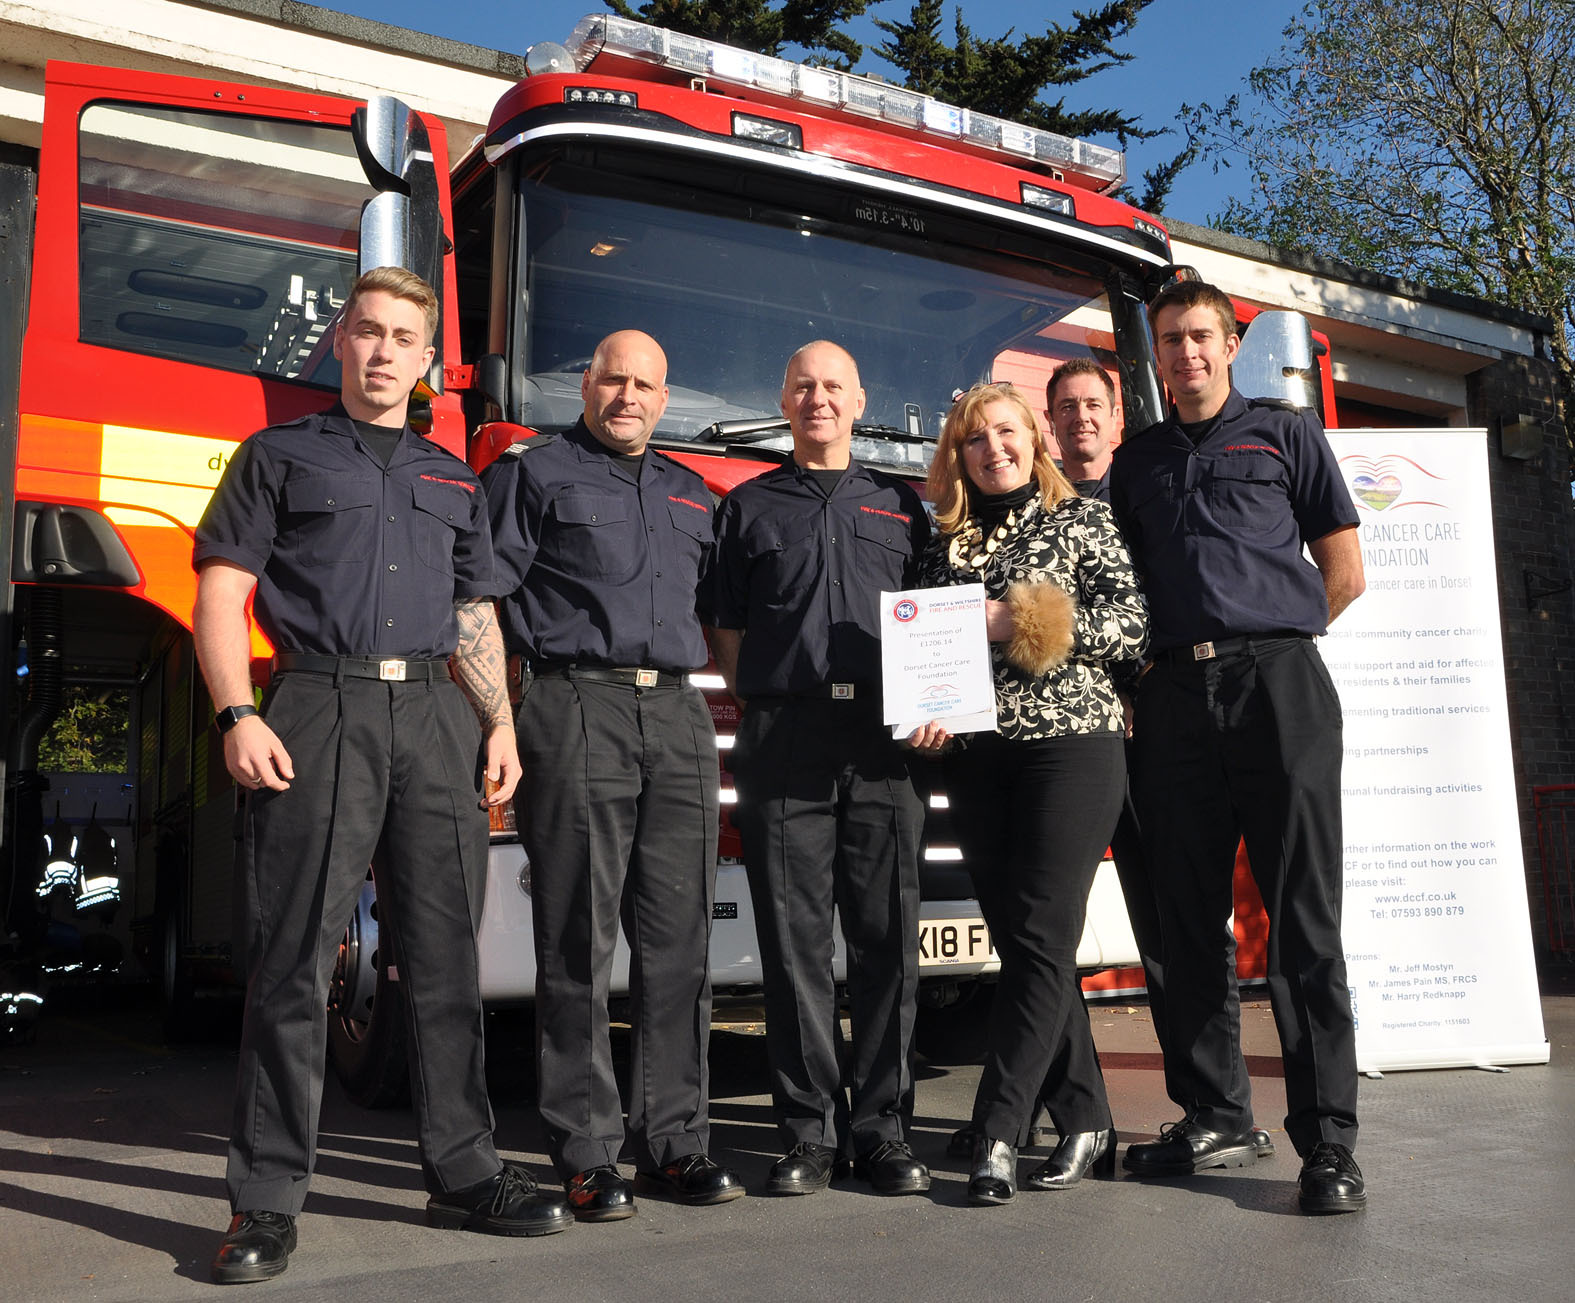 Officers of Christchurch Fire Station raised more than £1,200 for the Dorset Cancer Care Foundation with a giant tea party